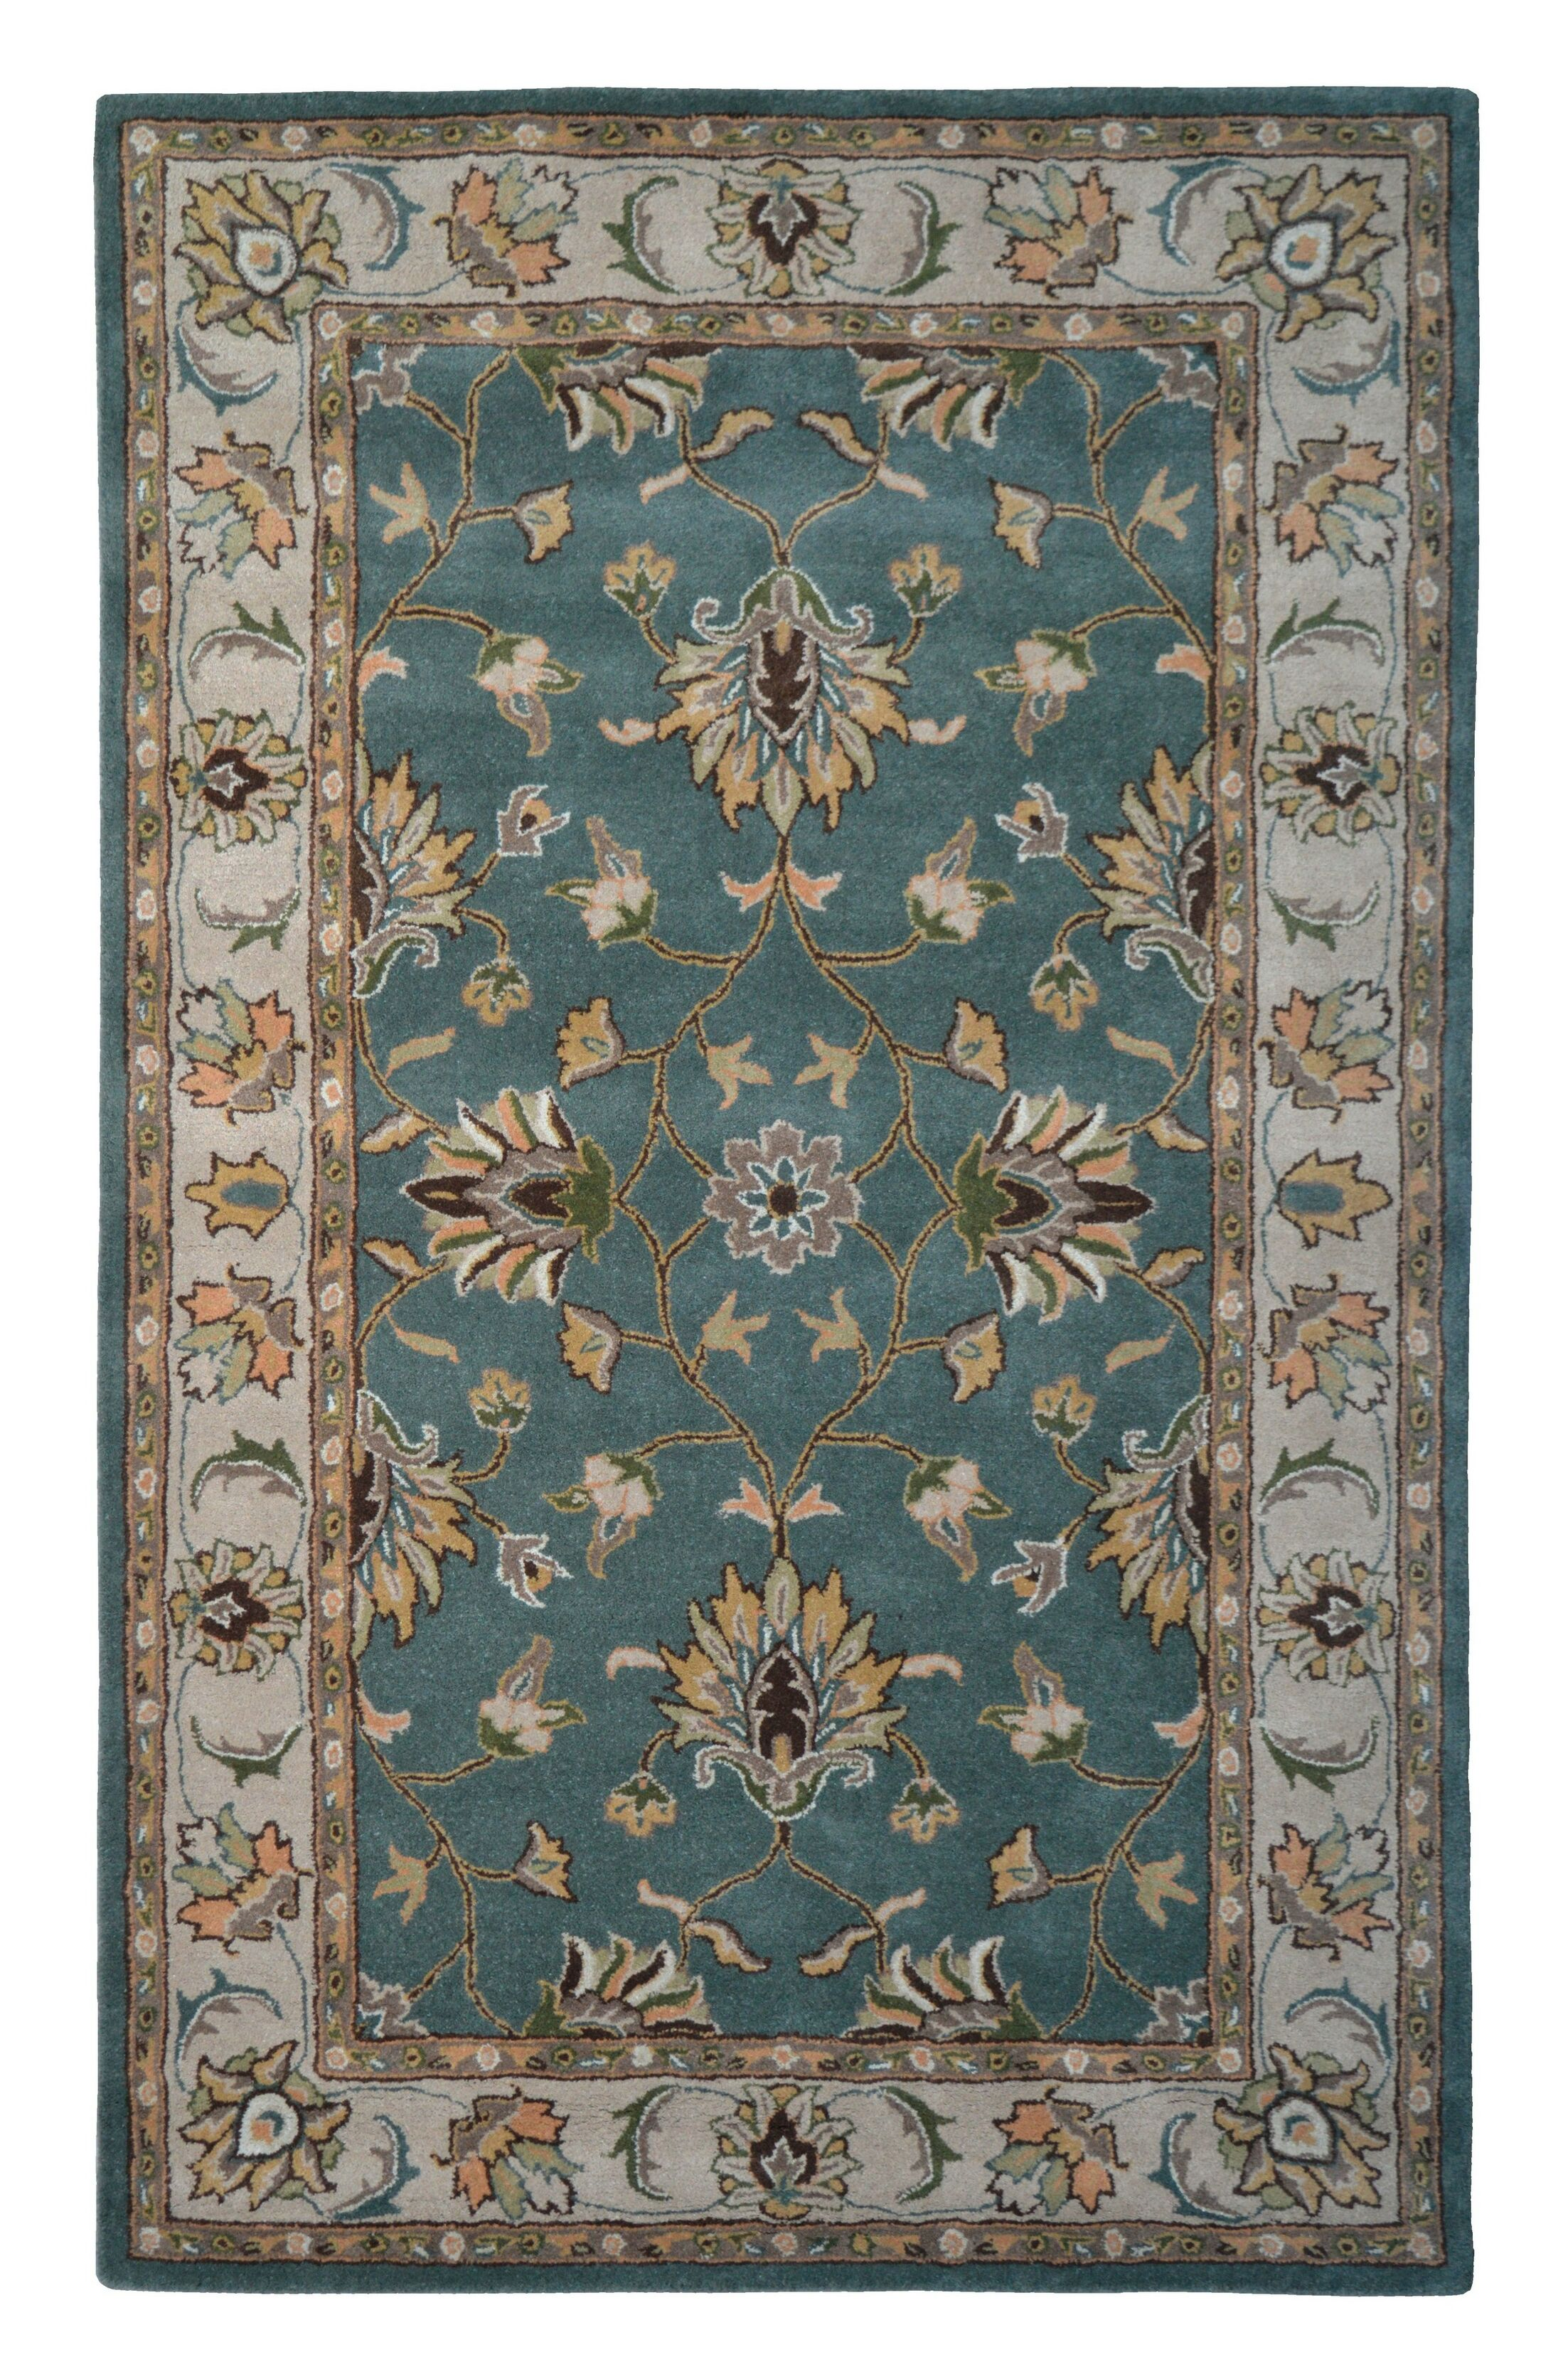 Wool Hand-Tufted Beige/Green Area Rug Rug Size: 5' x 8'